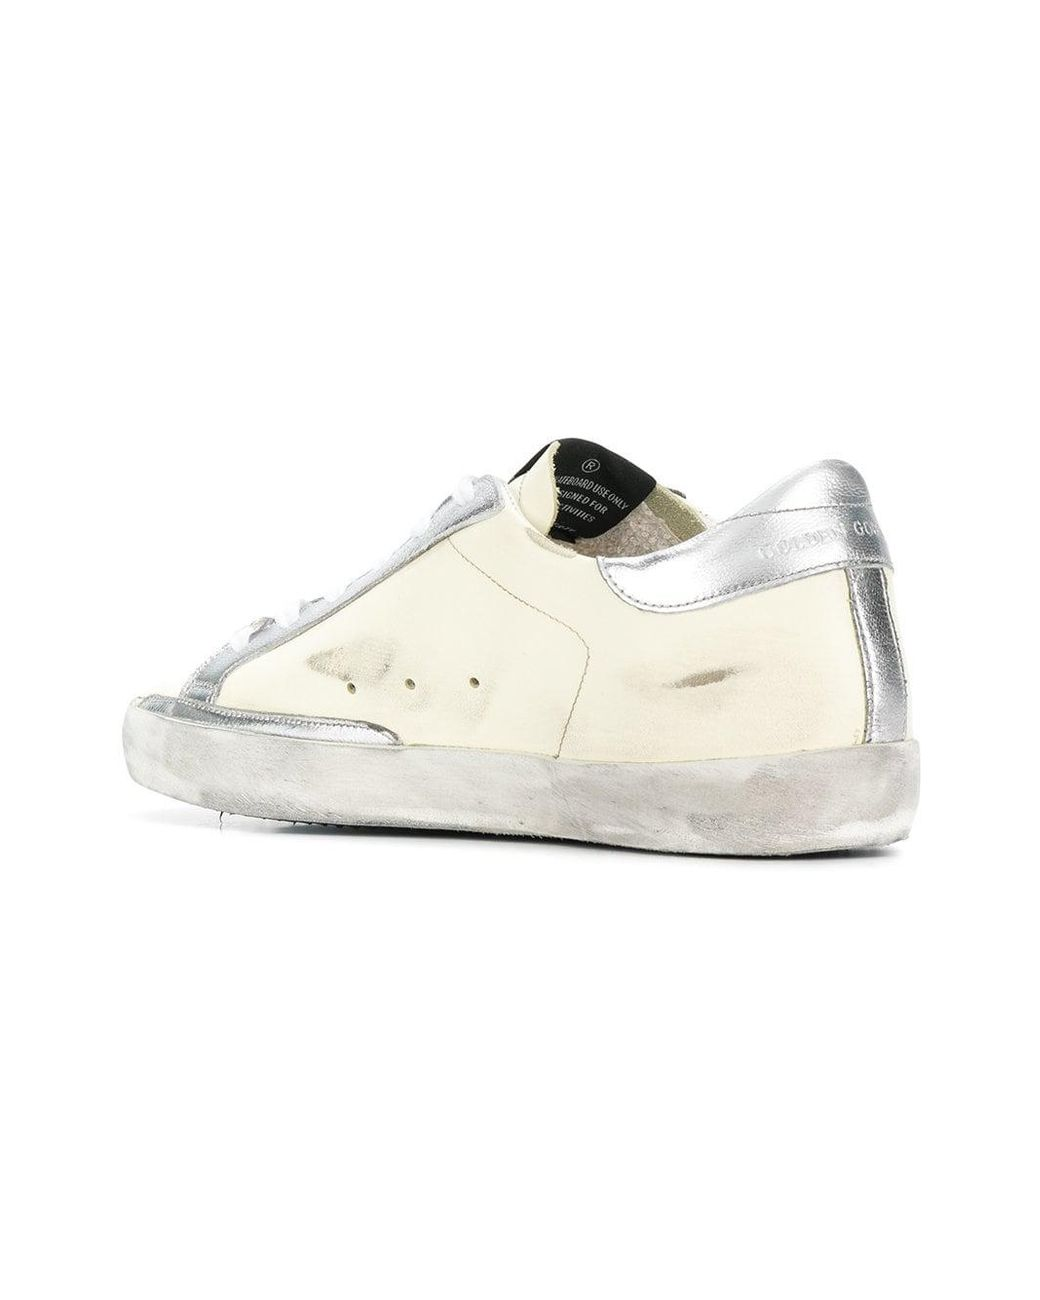 35279285a7bcc Golden Goose Deluxe Brand Women s Yellow Side Star Lace Up Trainers ...